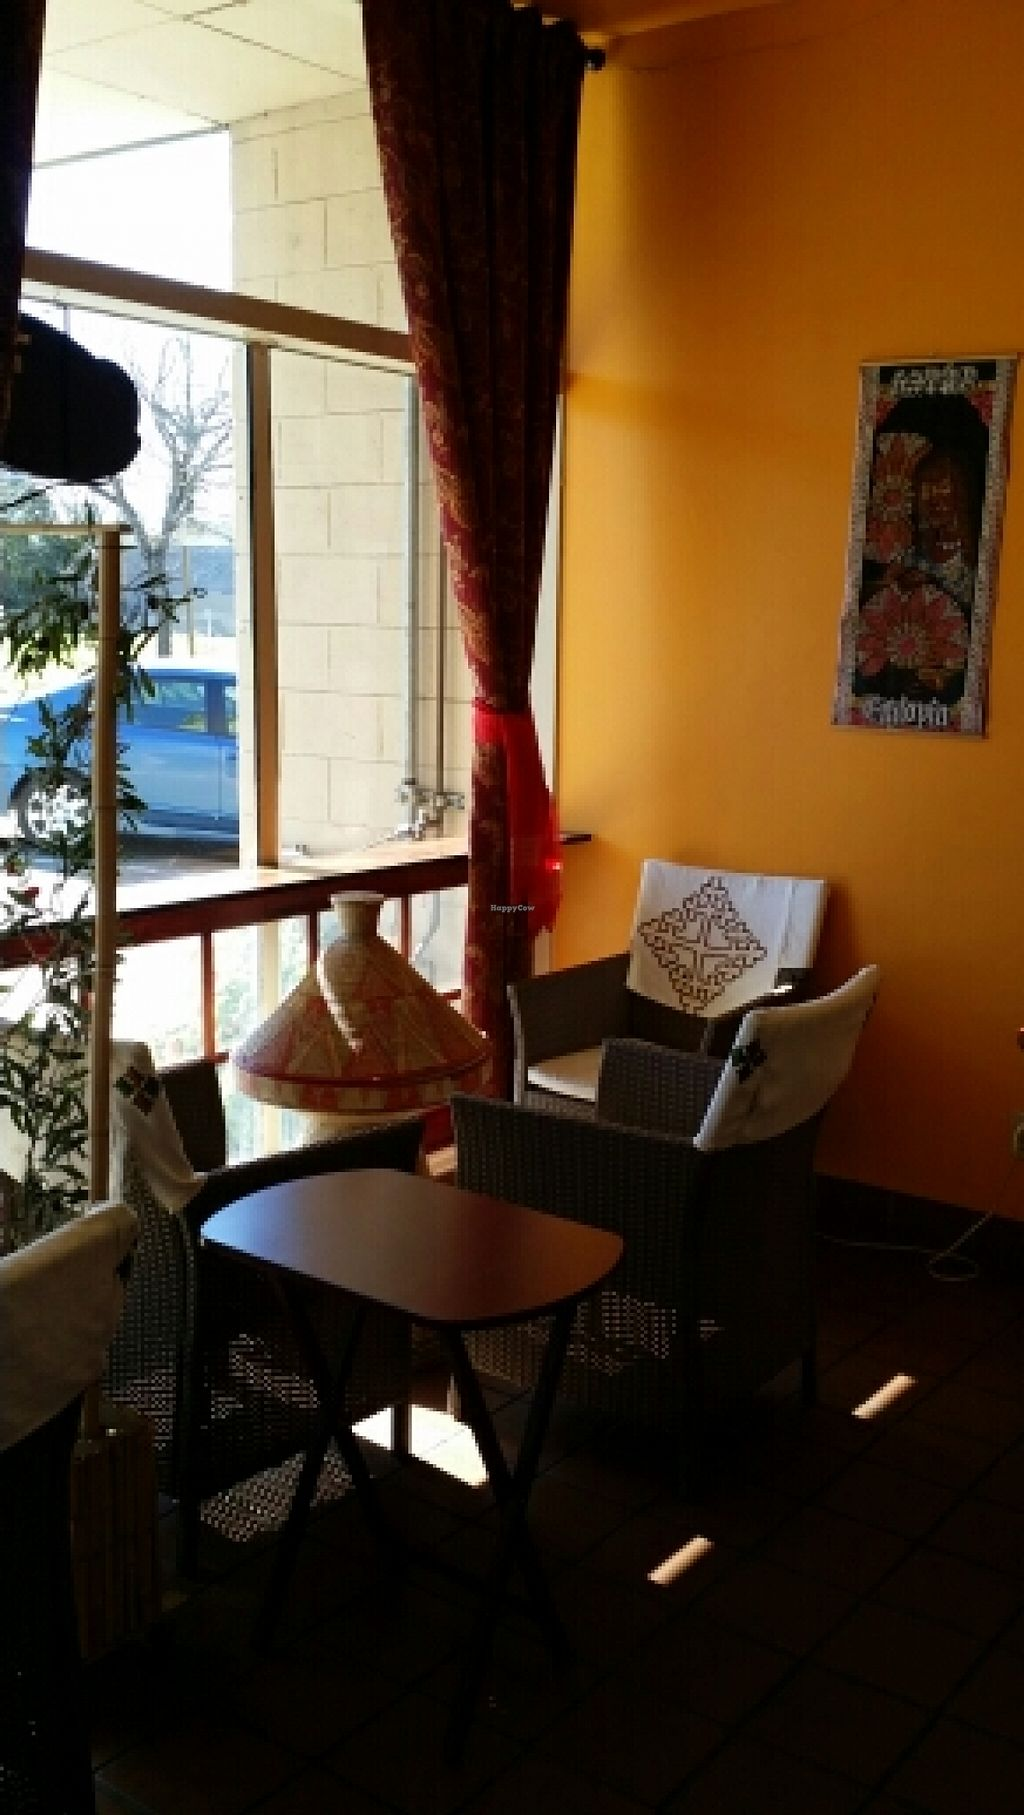 """Photo of Abyssinia Restaurant  by <a href=""""/members/profile/catbone"""">catbone</a> <br/>There are 2 small waiting area up front like this one <br/> February 15, 2016  - <a href='/contact/abuse/image/48953/136441'>Report</a>"""